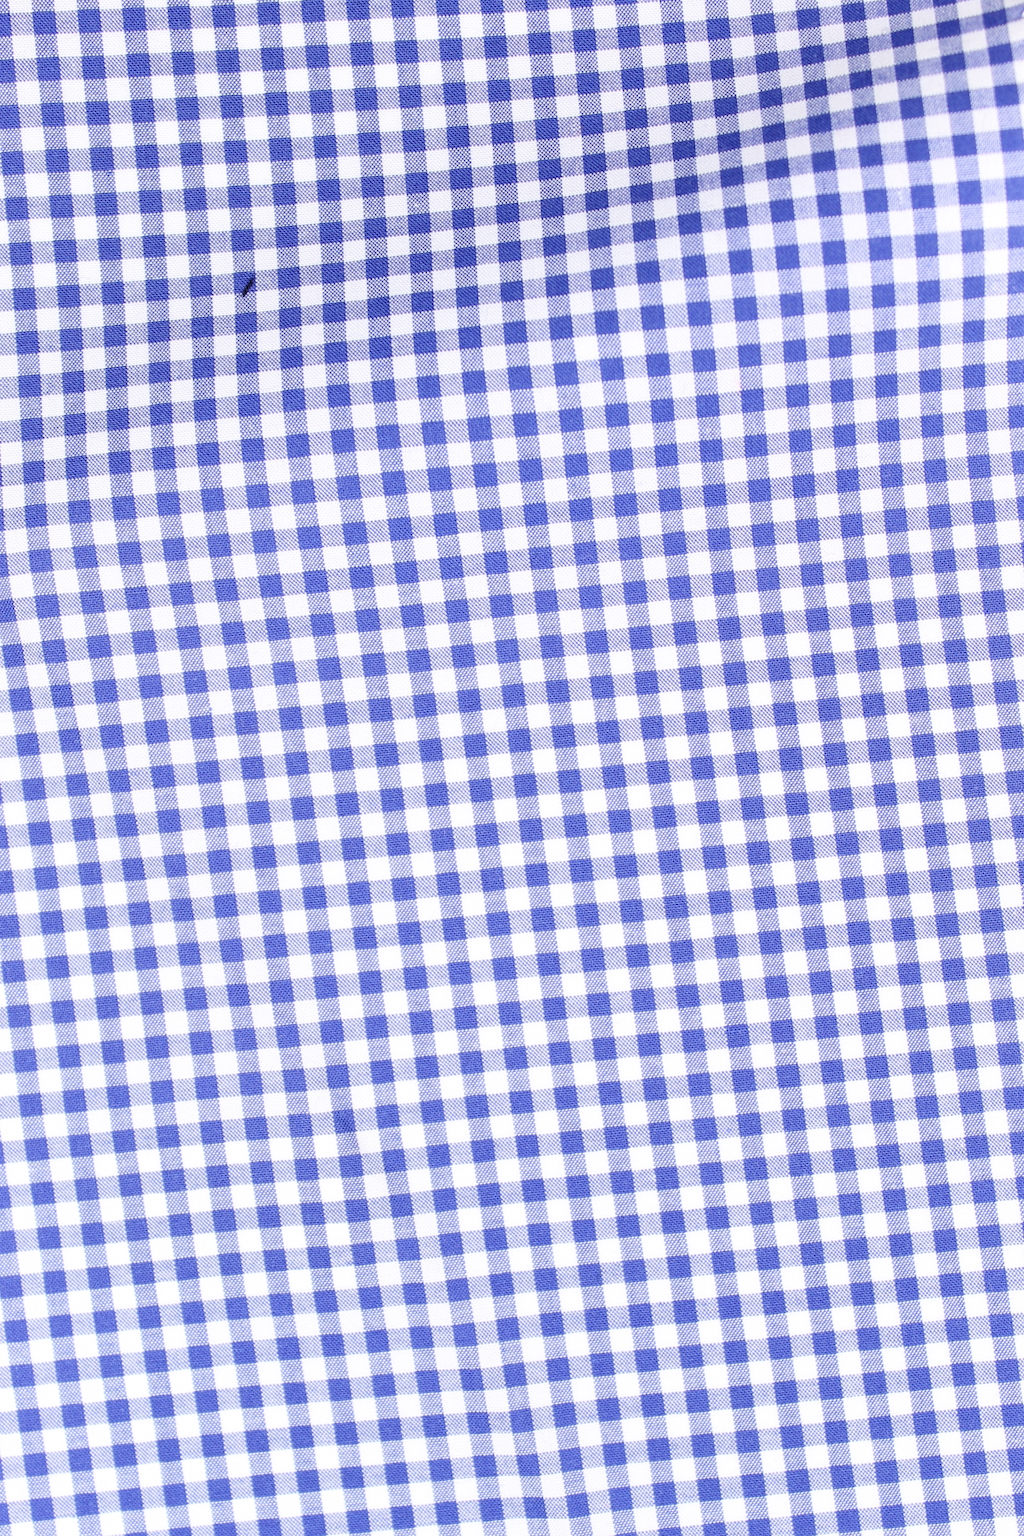 6608 Royal Gingham.JPG